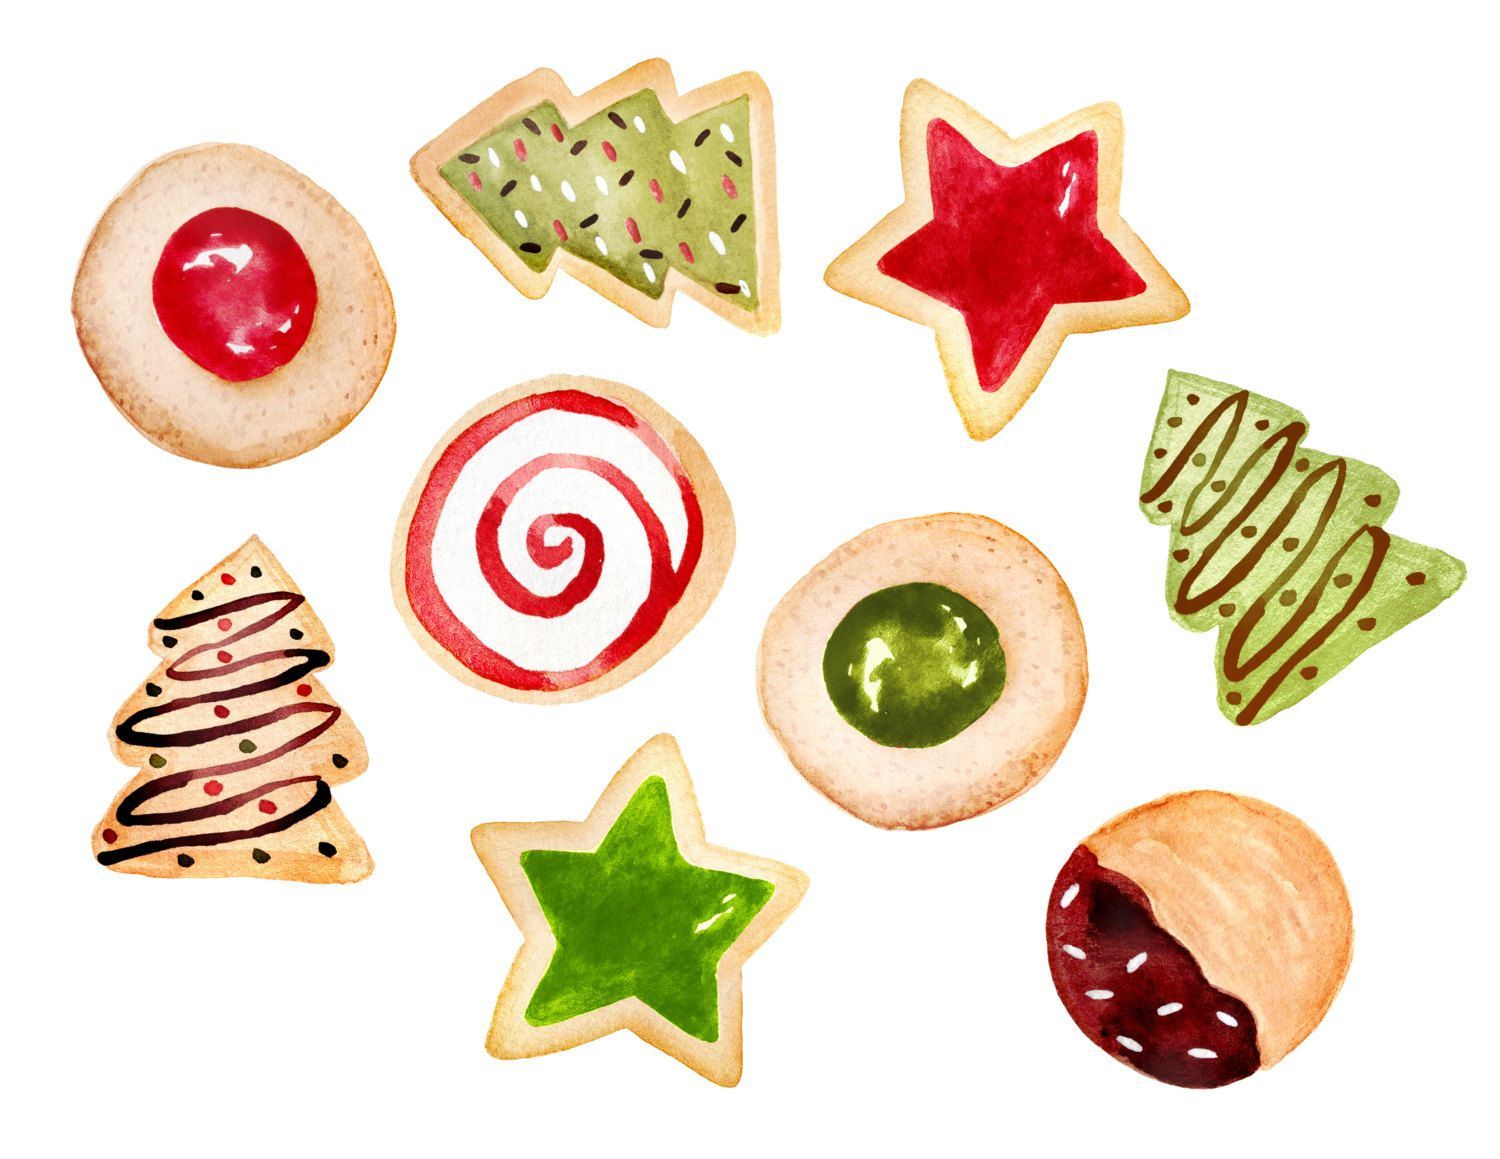 Christmas Cookies By Rosabebe Retail 6 50 On Sale For 1 95 70